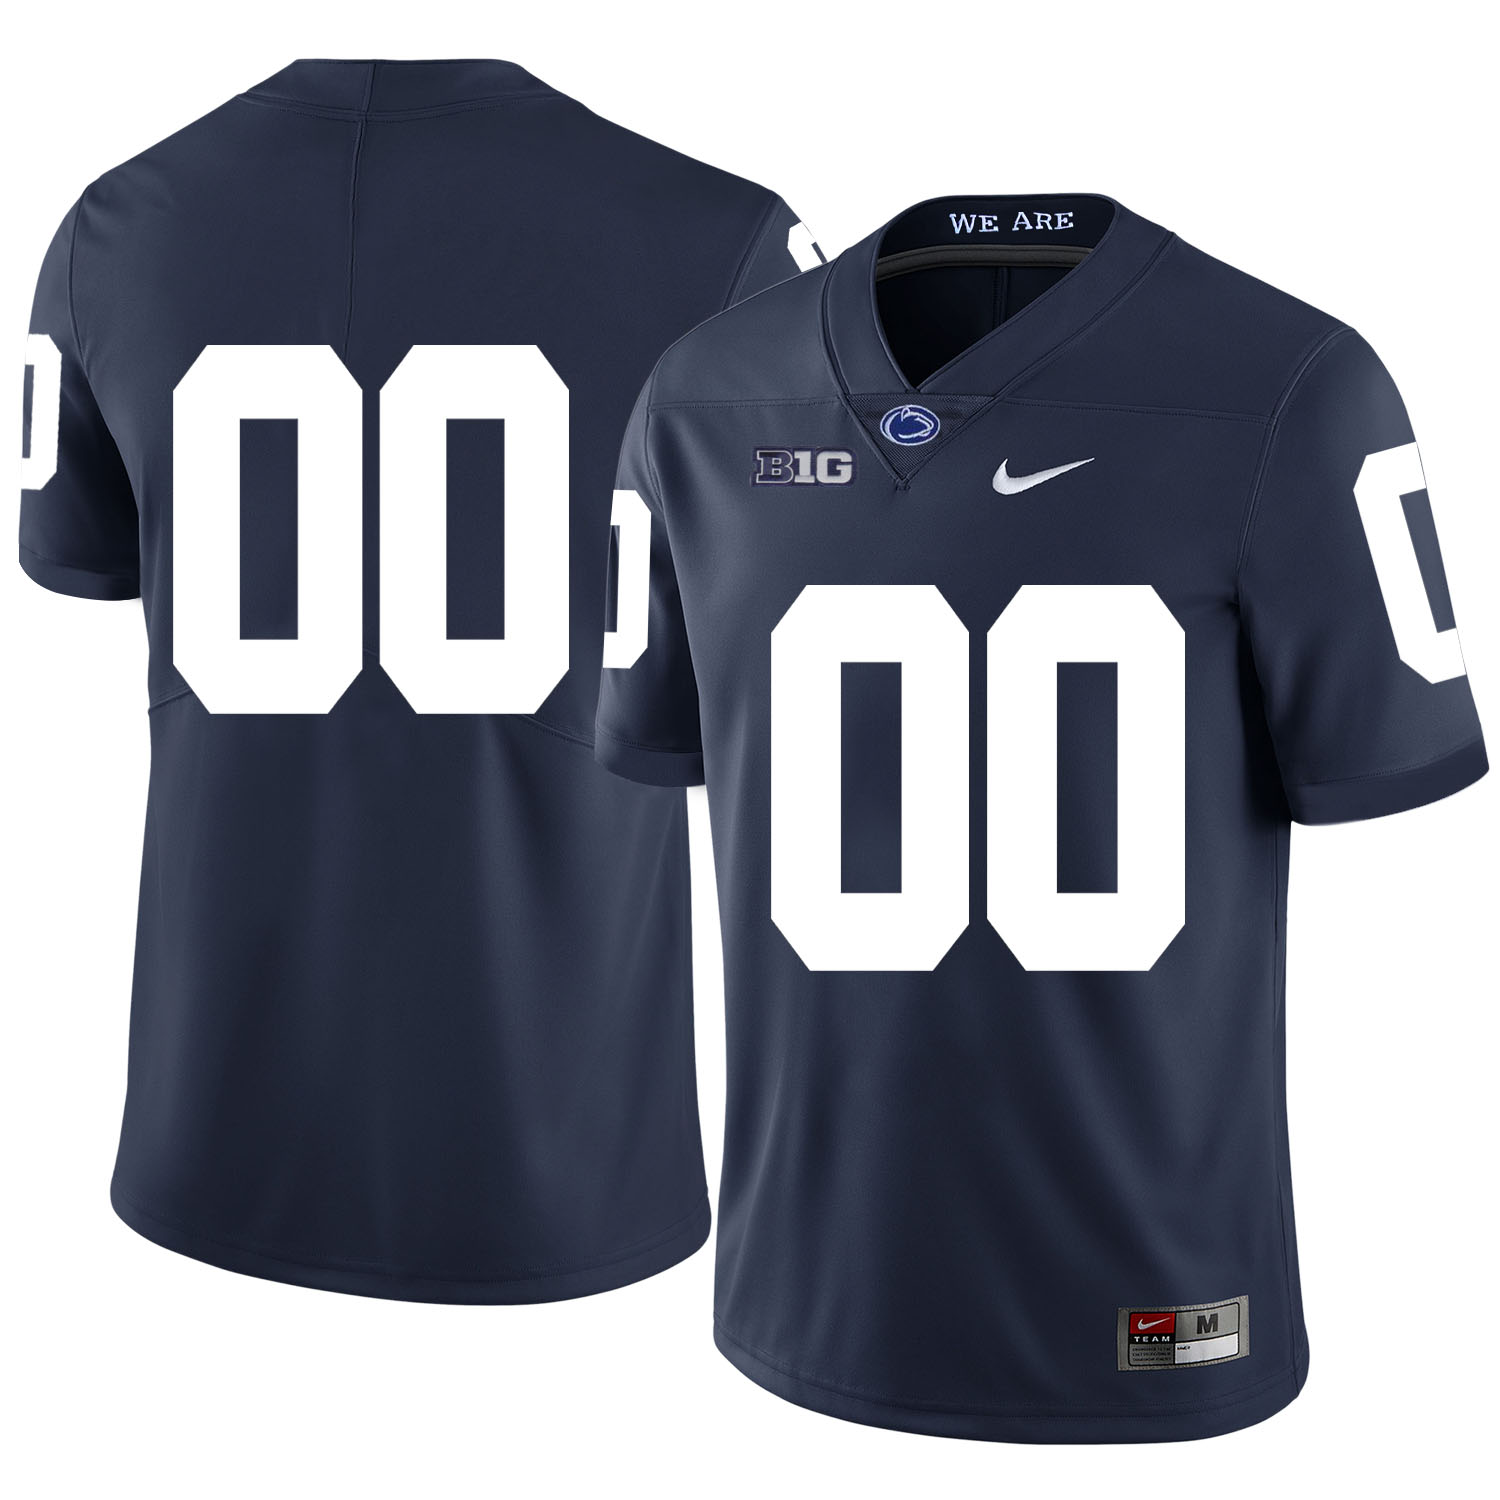 Penn State Nittany Lions Navy Men's Customized Nike College Football Jersey